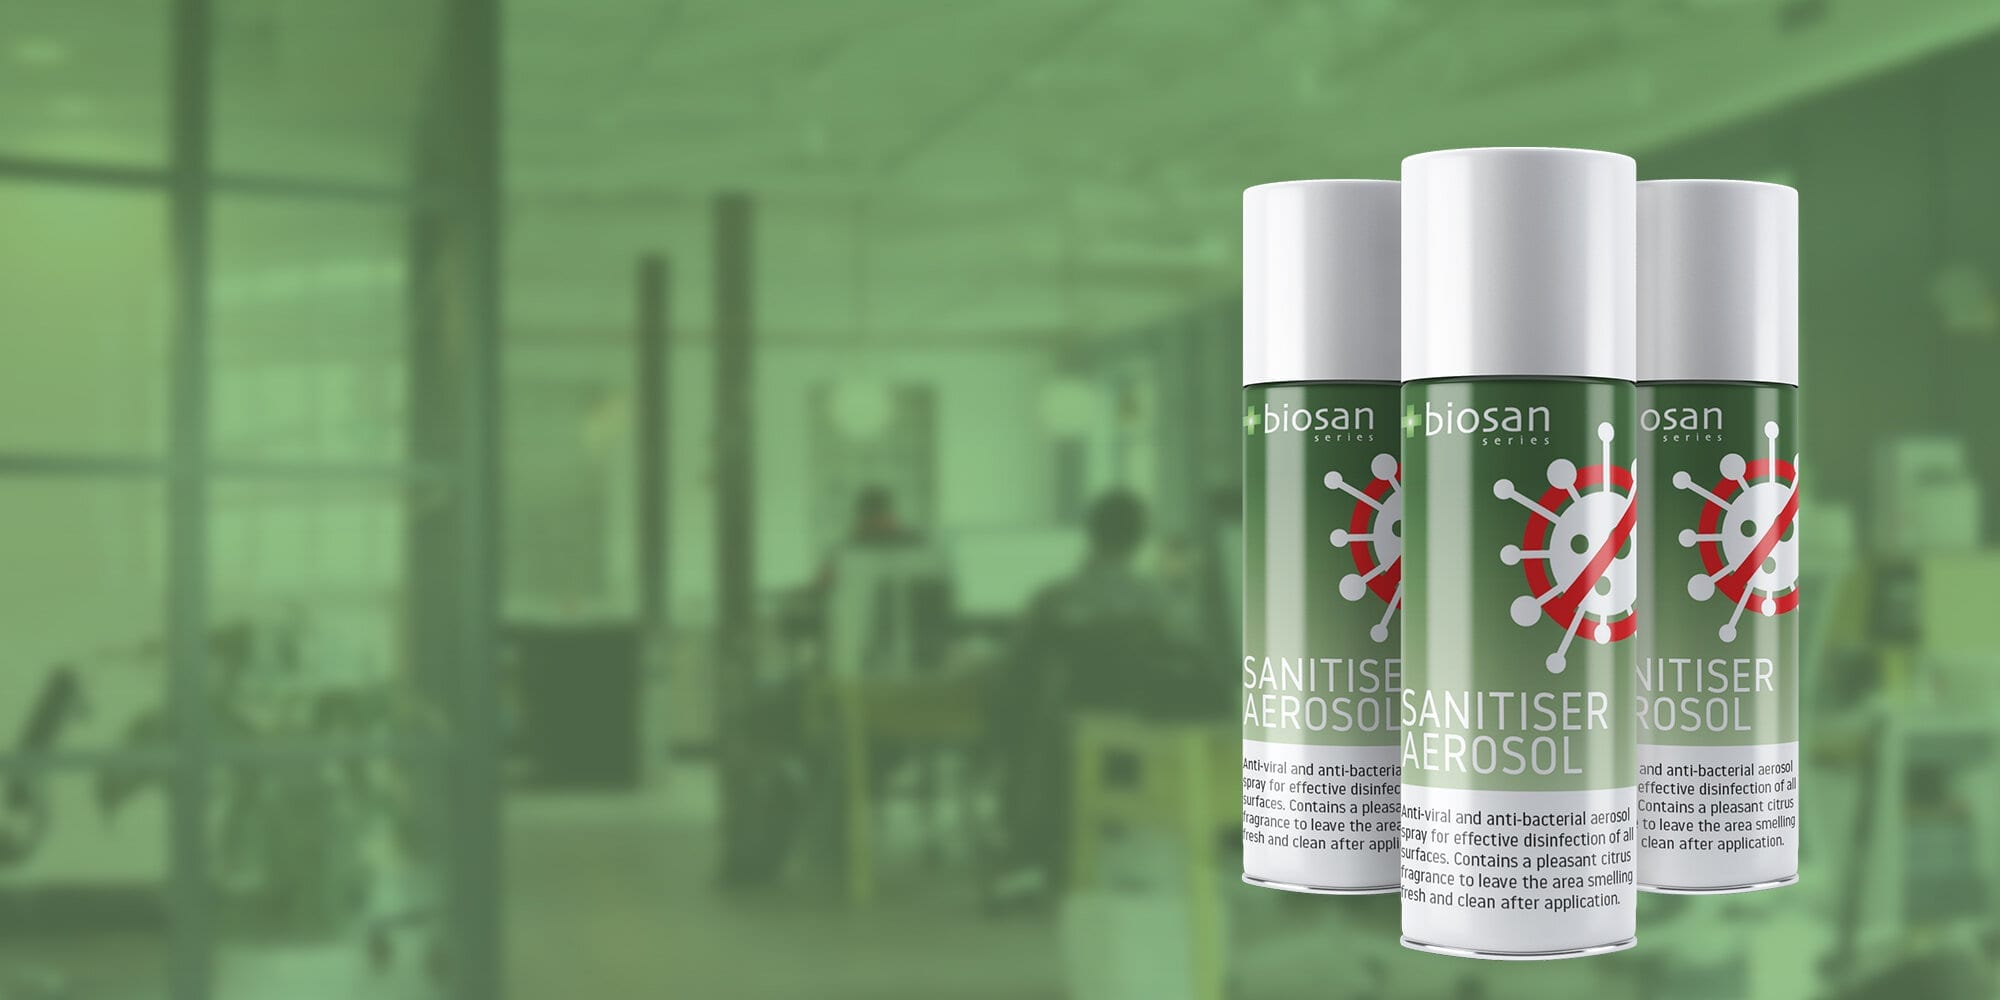 New product launched – introducing the Biosan Total-Release Sanitiser Aerosol